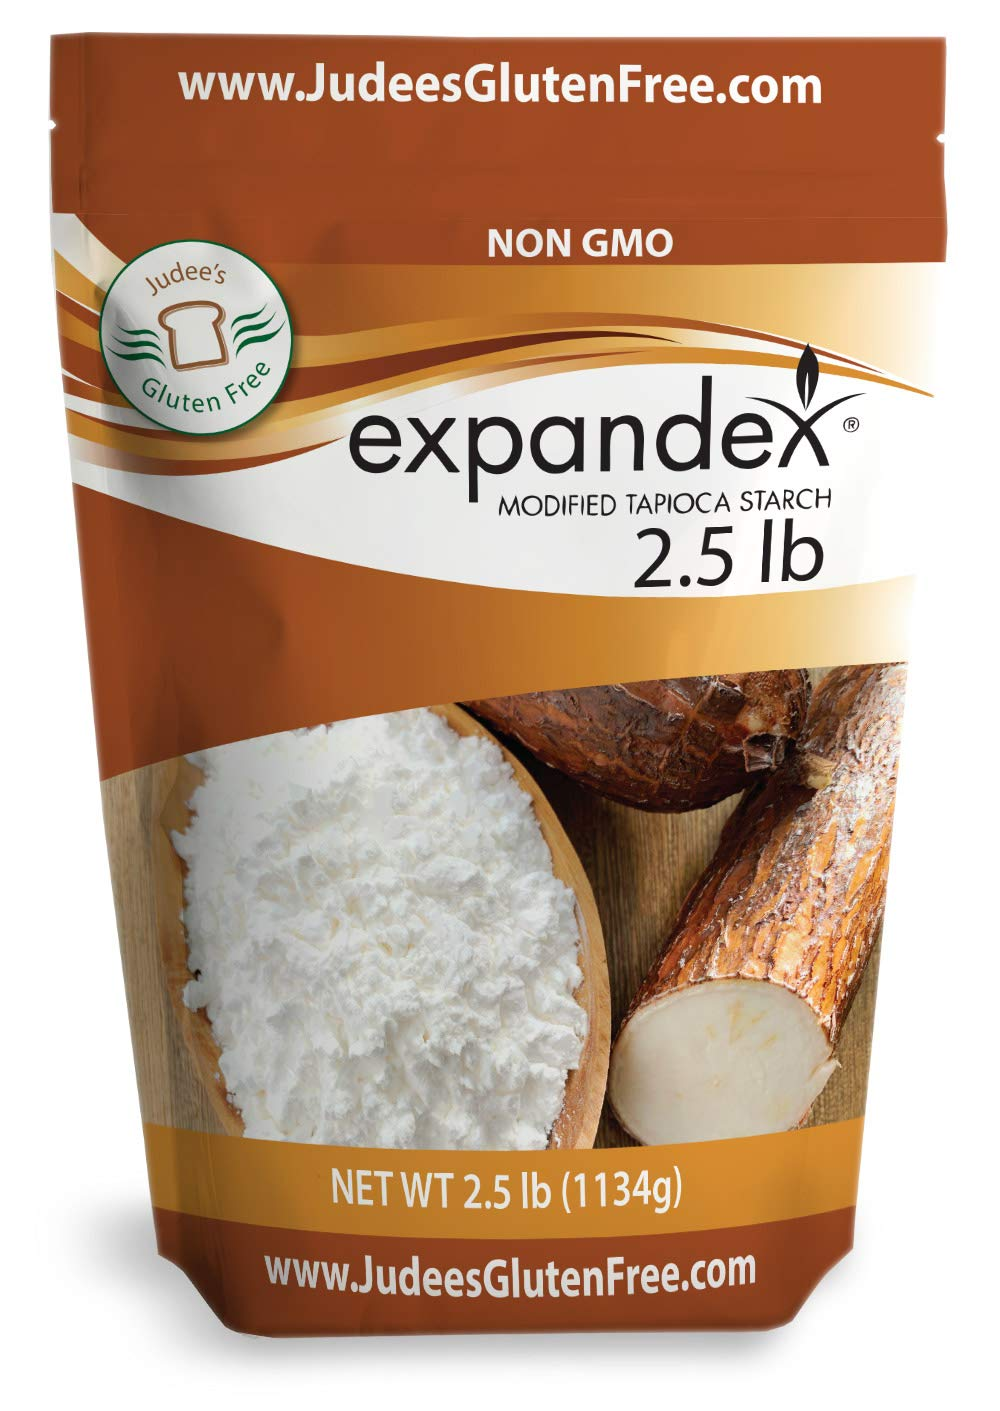 Judee's Expandex Modified Tapioca Starch 2.5 lb (40 oz) - Gluten Free-Non-GMO, USA Packaged, & Filled in a Dedicated Gluten & Nut Free Facility